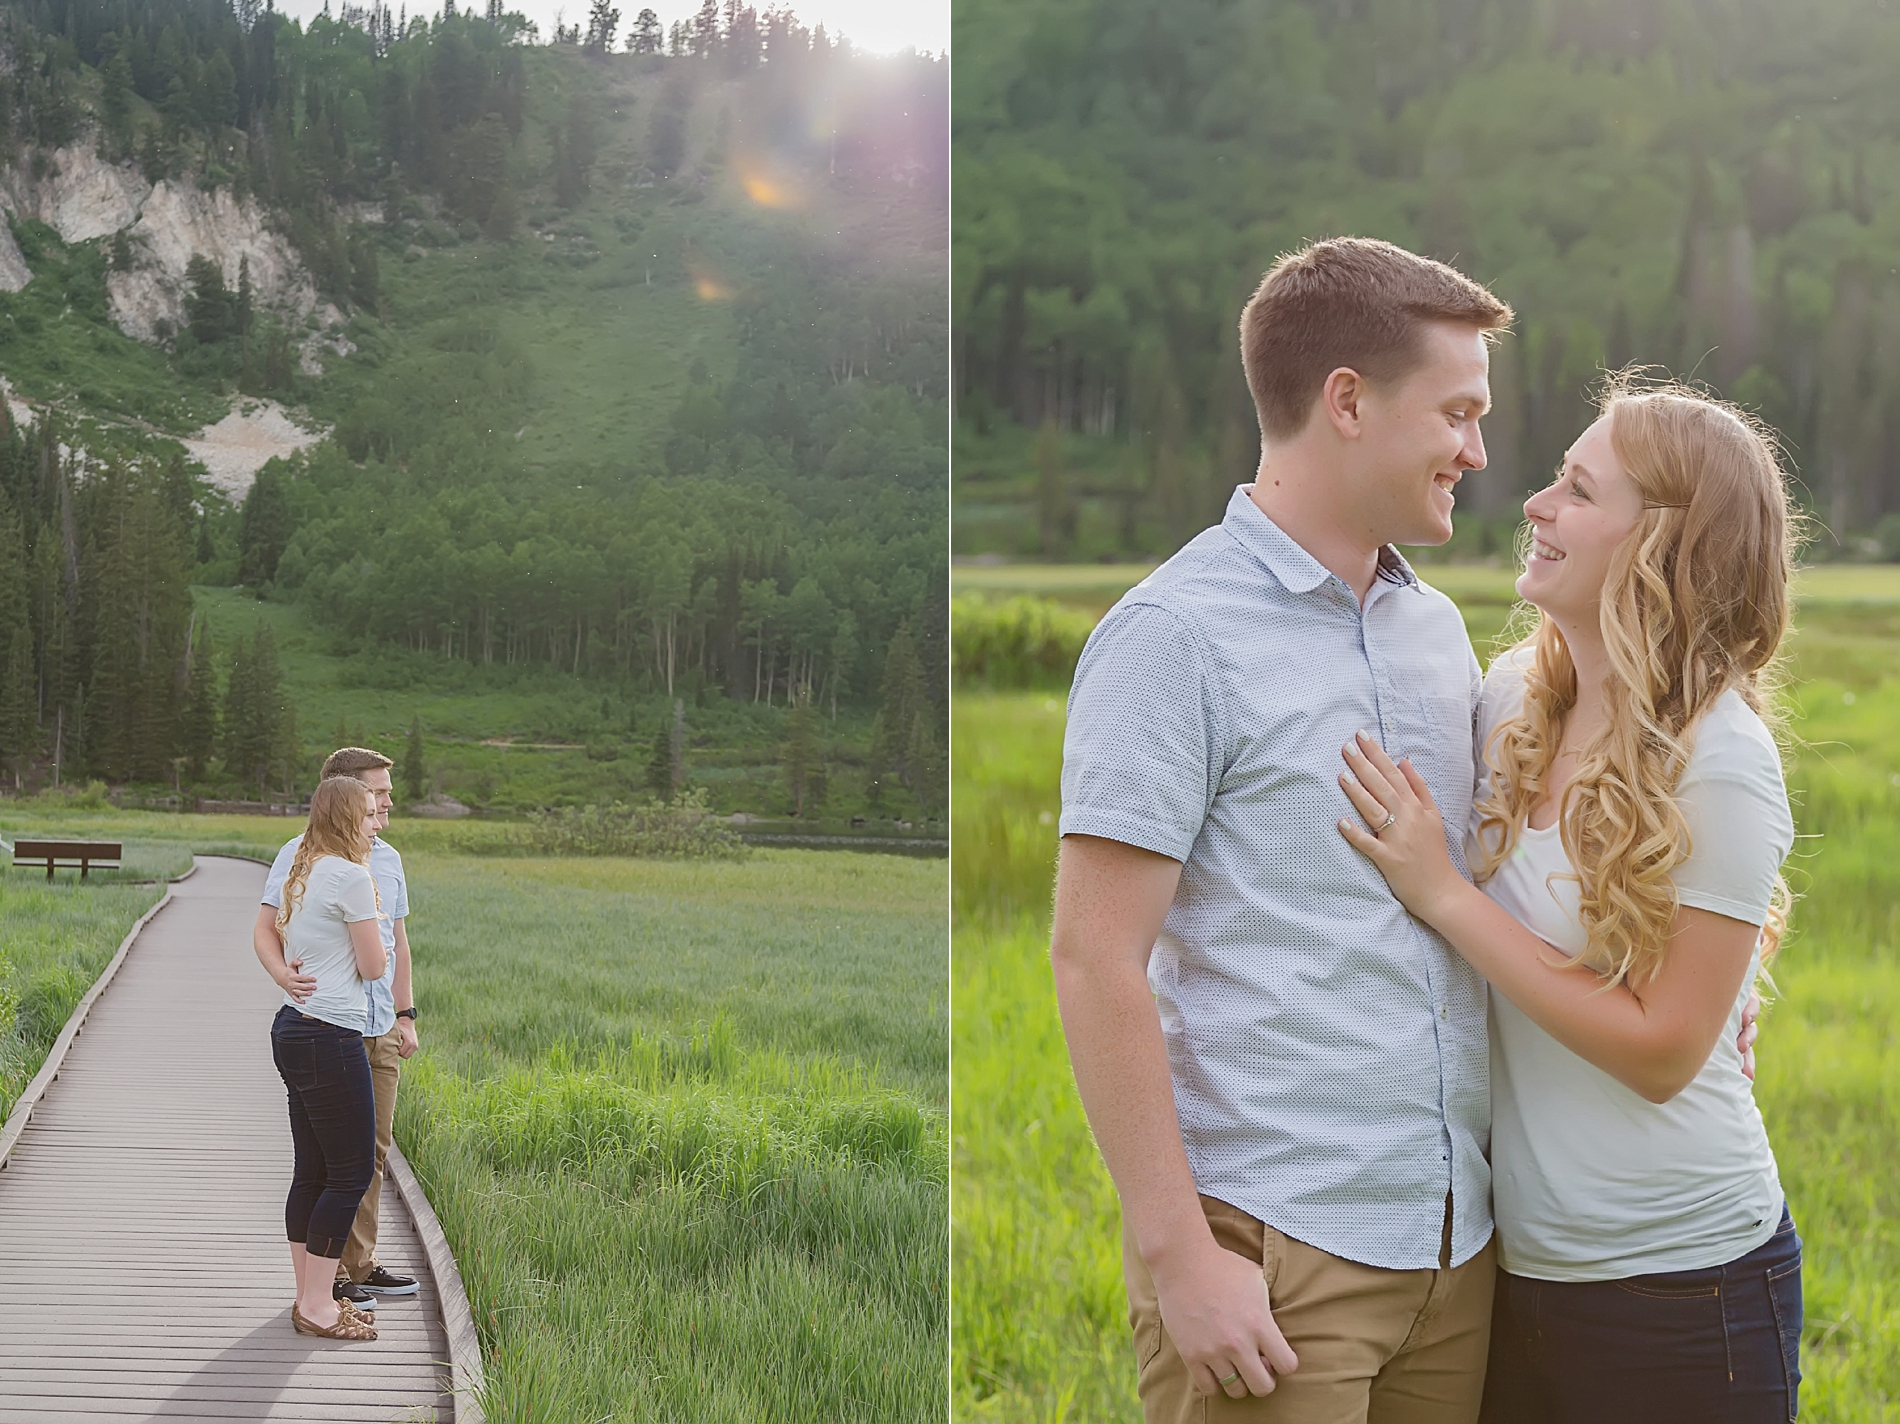 Silver-Lake-engagements-by-Rachel-Nielsen-3